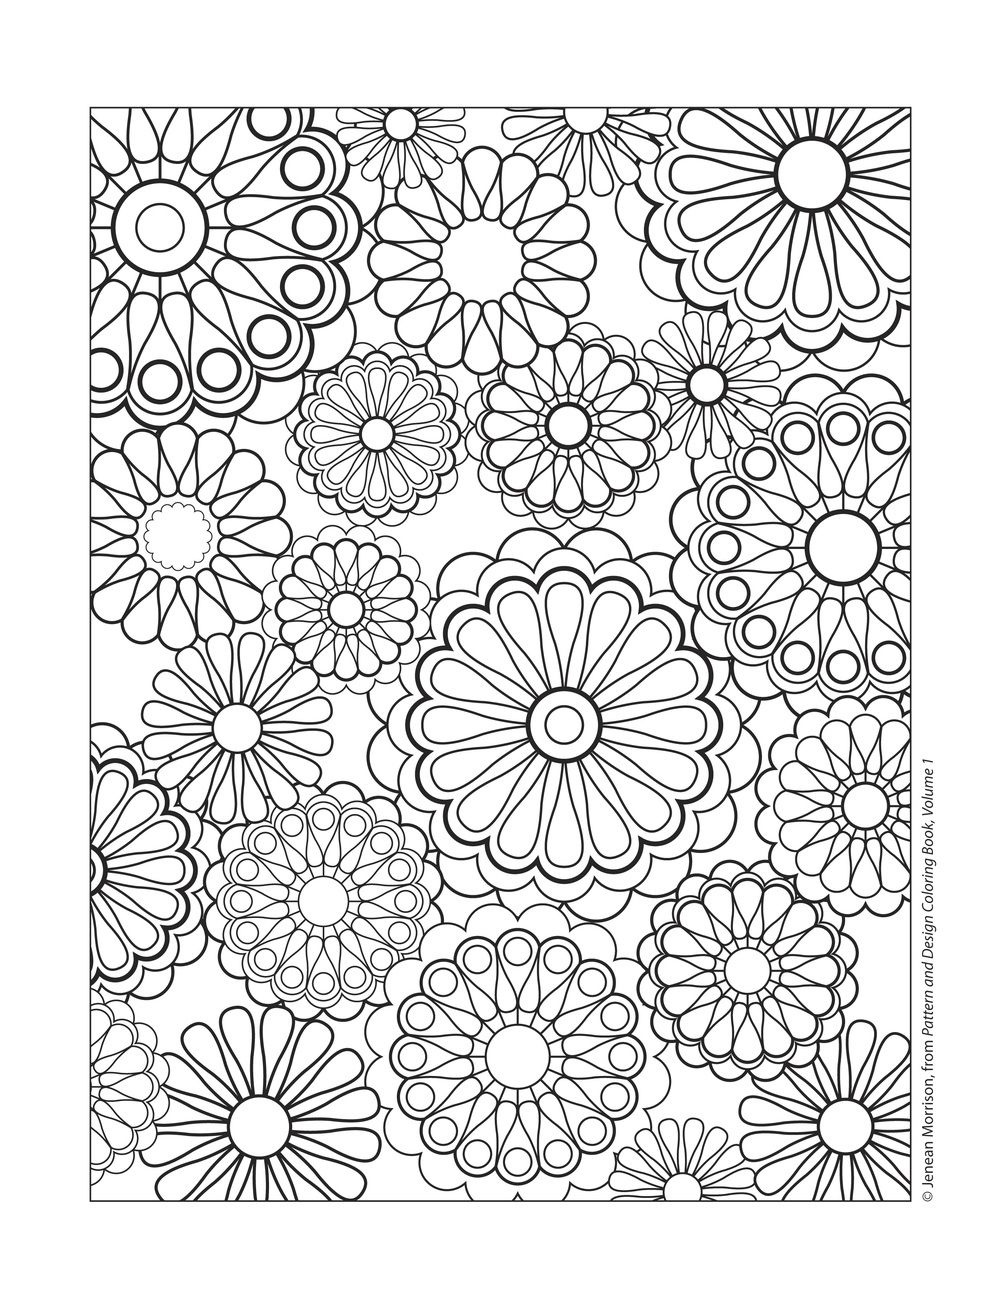 graphic relating to Printable Grayscale called Absolutely free Grayscale Coloring Internet pages Toward Print Image Al